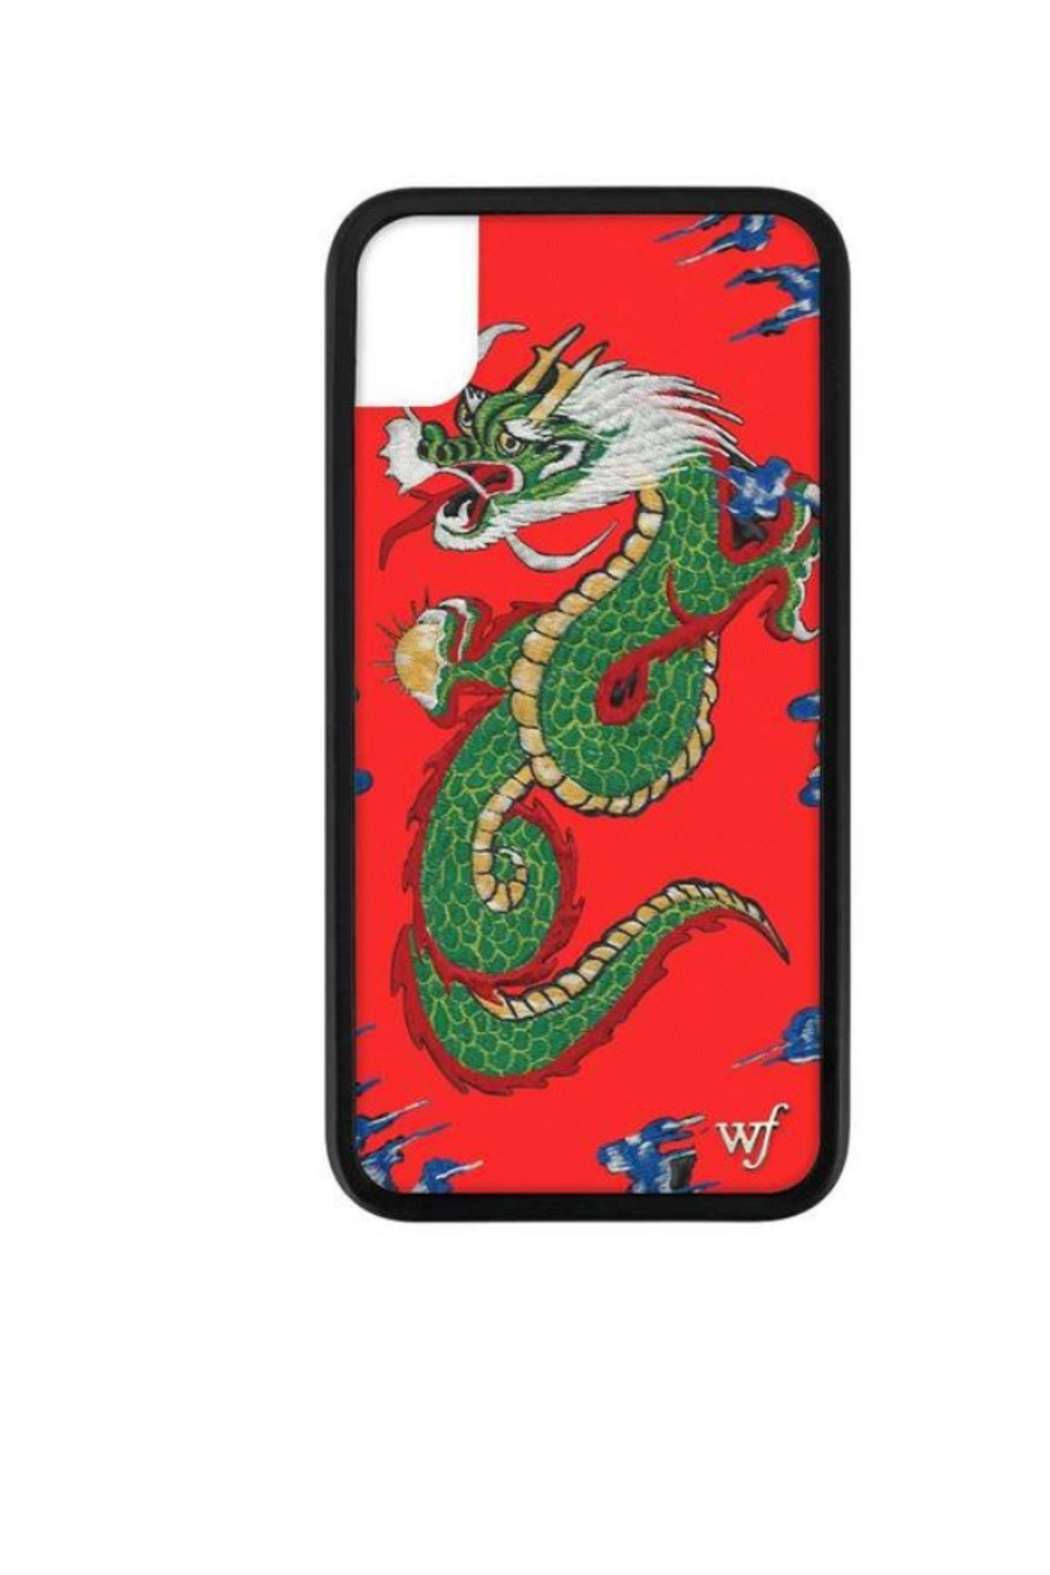 the latest 5229e 09e4a Wildflower Cases Red Dragon iPhone X Case from New York by Let's Bag ...